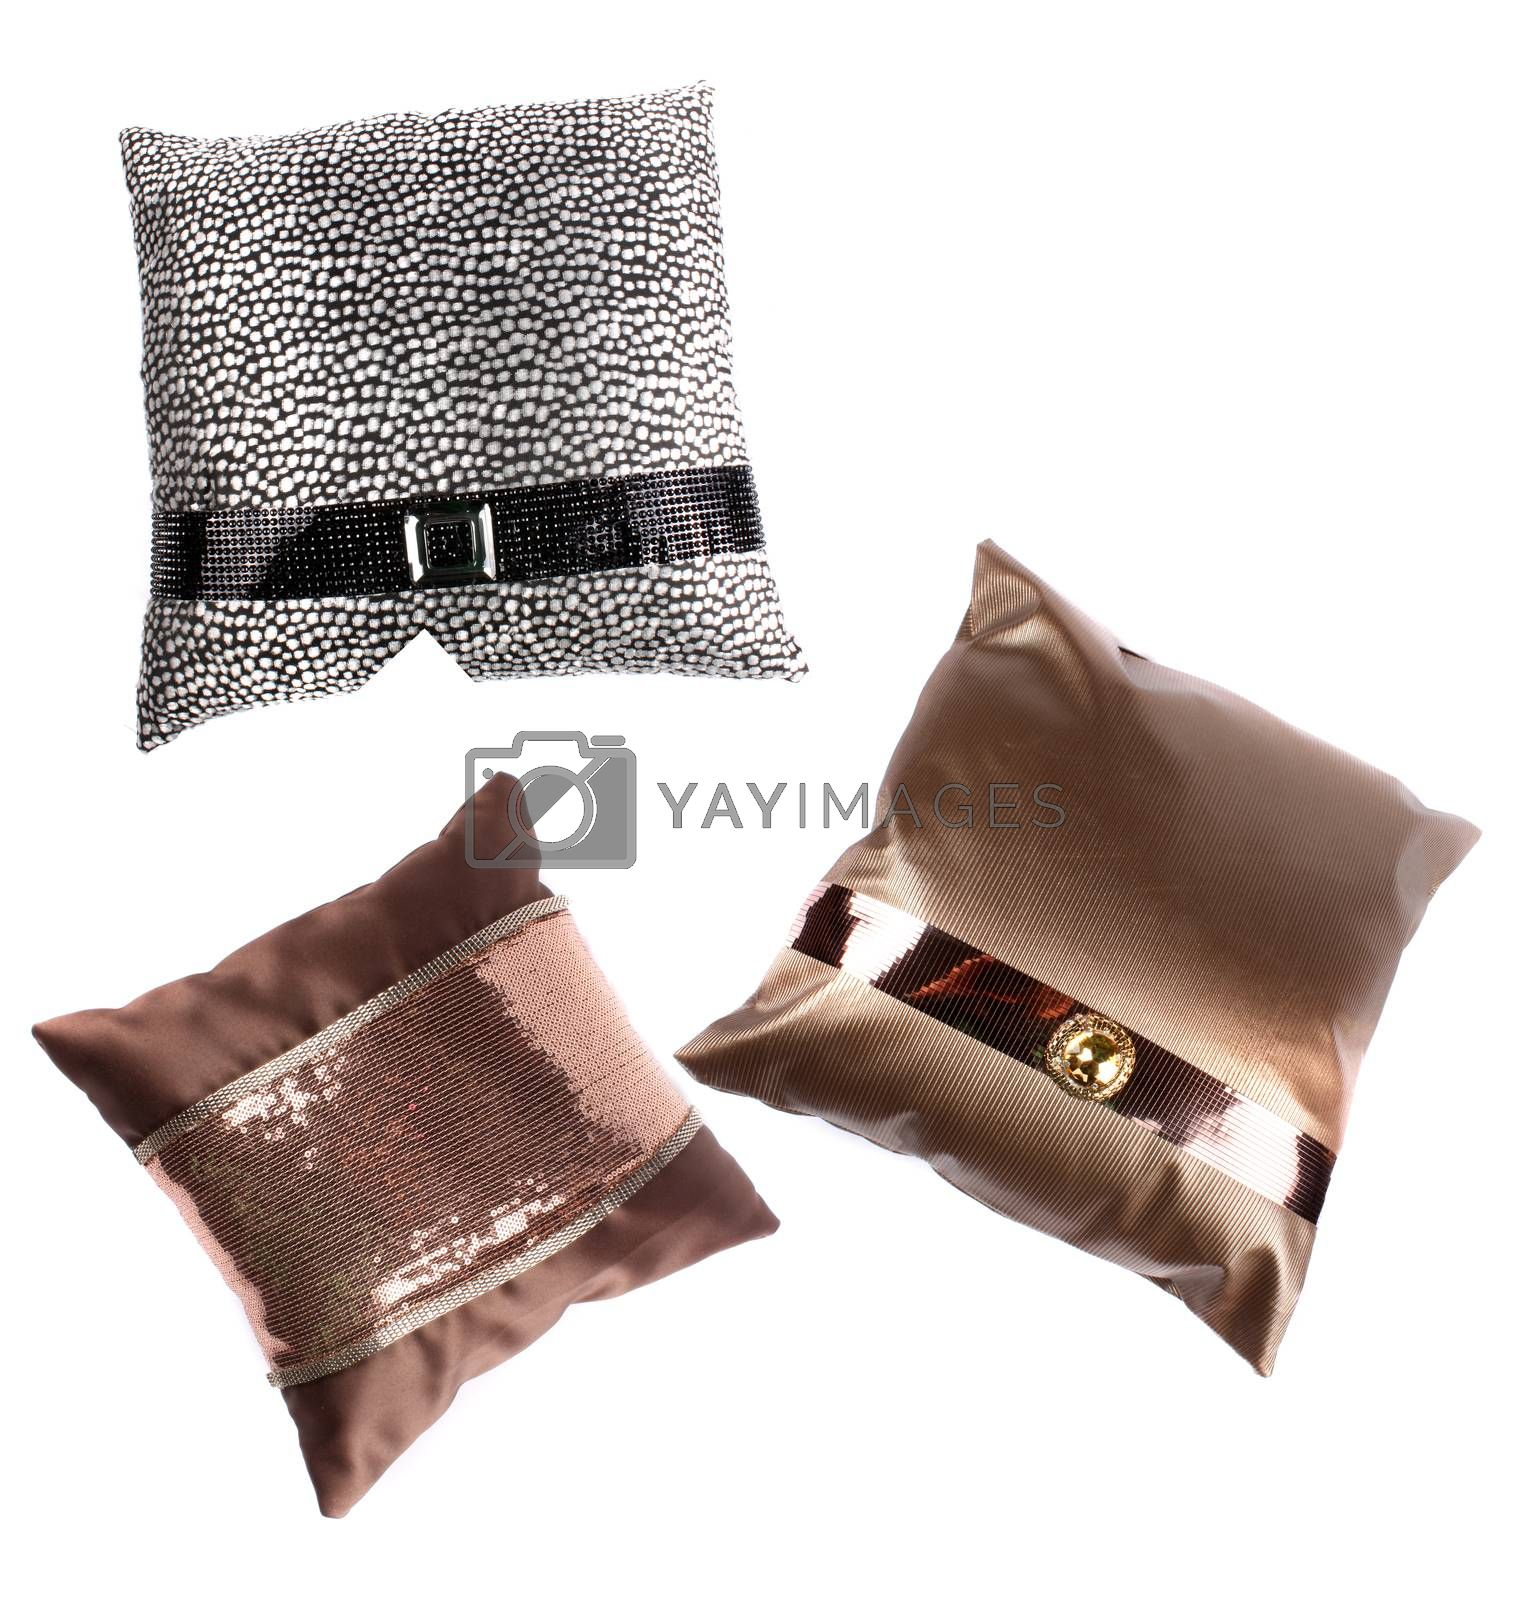 A set of luxurious pillows with beautiful designs, on white studio background.